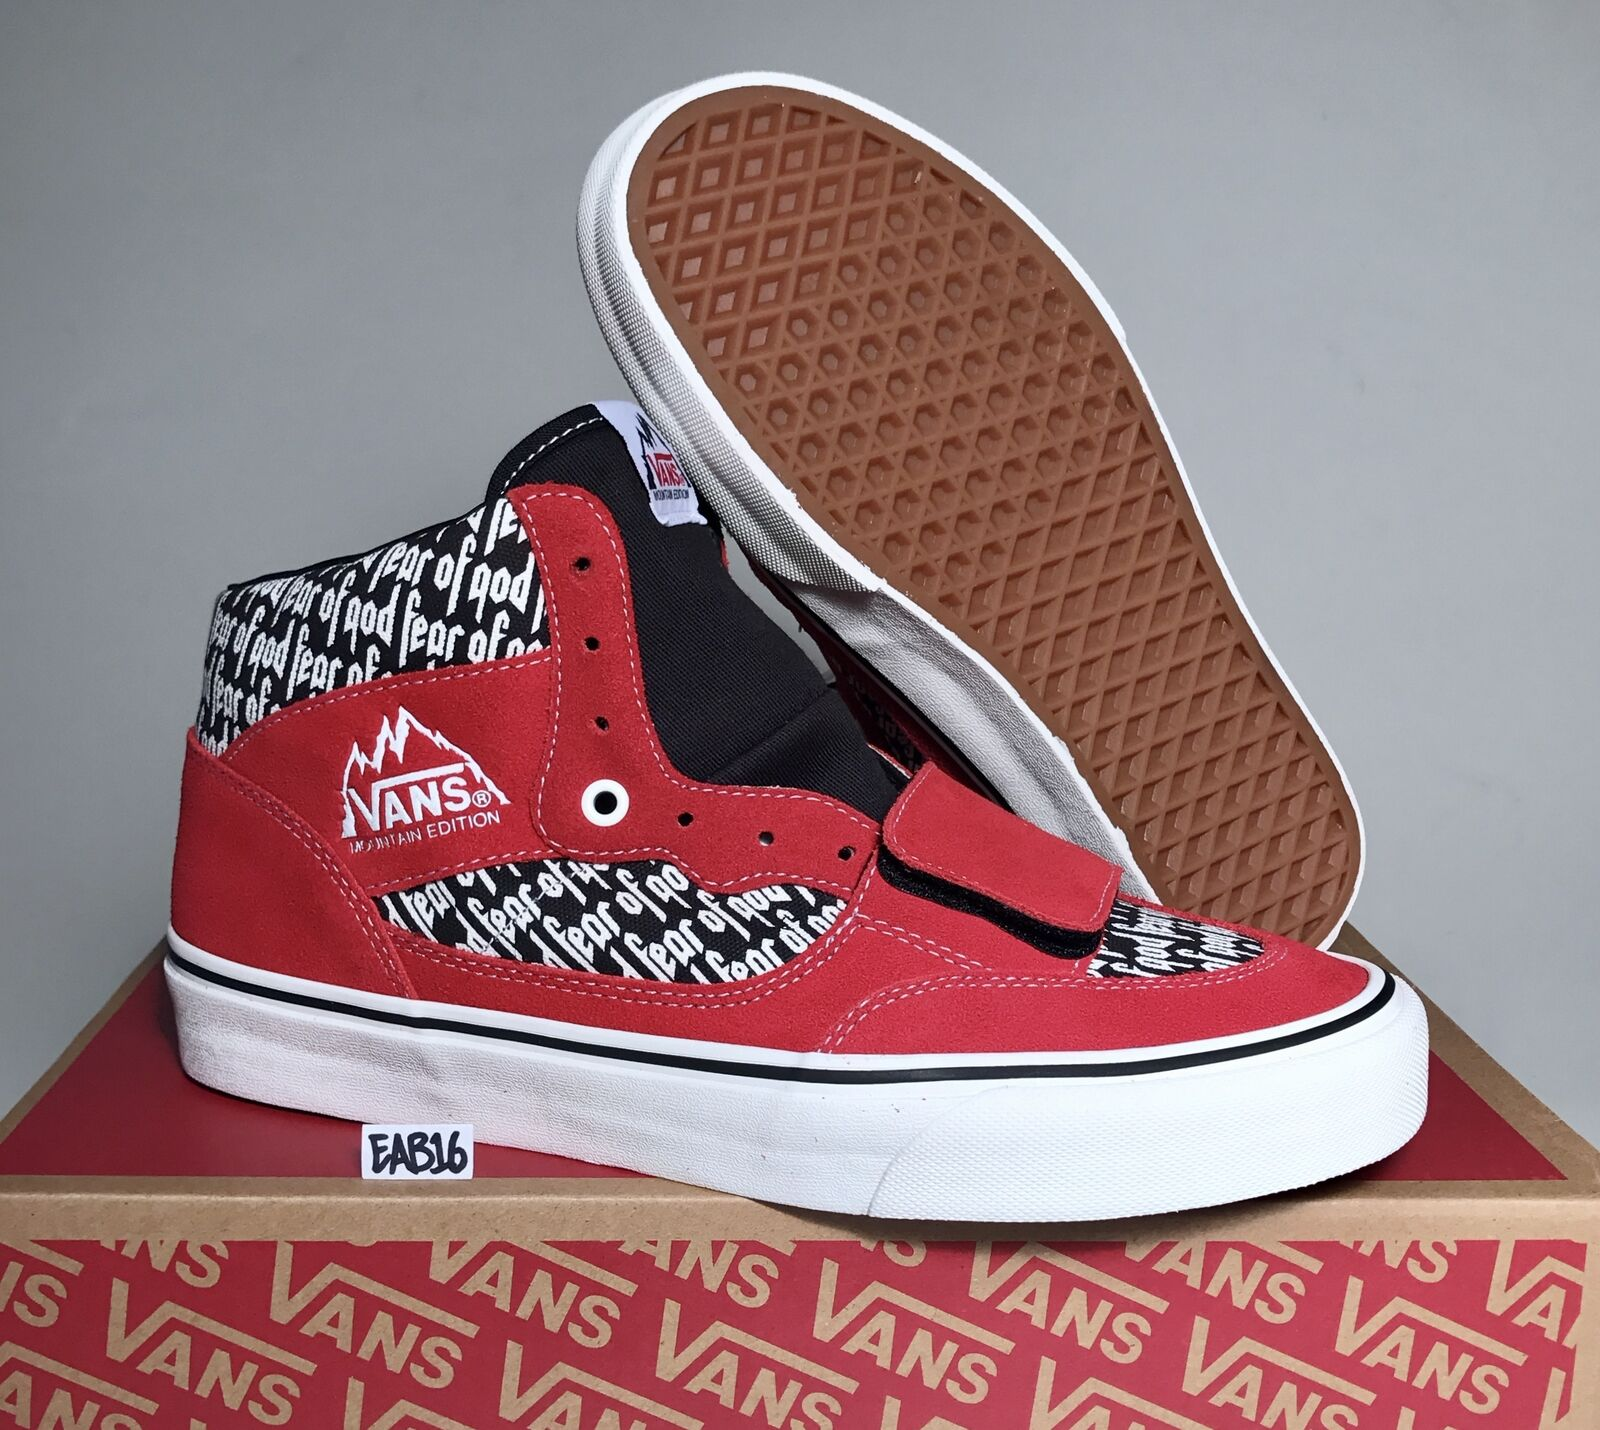 Vans X Fear of God Mountain Edition 35 DX Collection 9.5 2 Size 9.5 Collection 10 10.5 FOG f47059